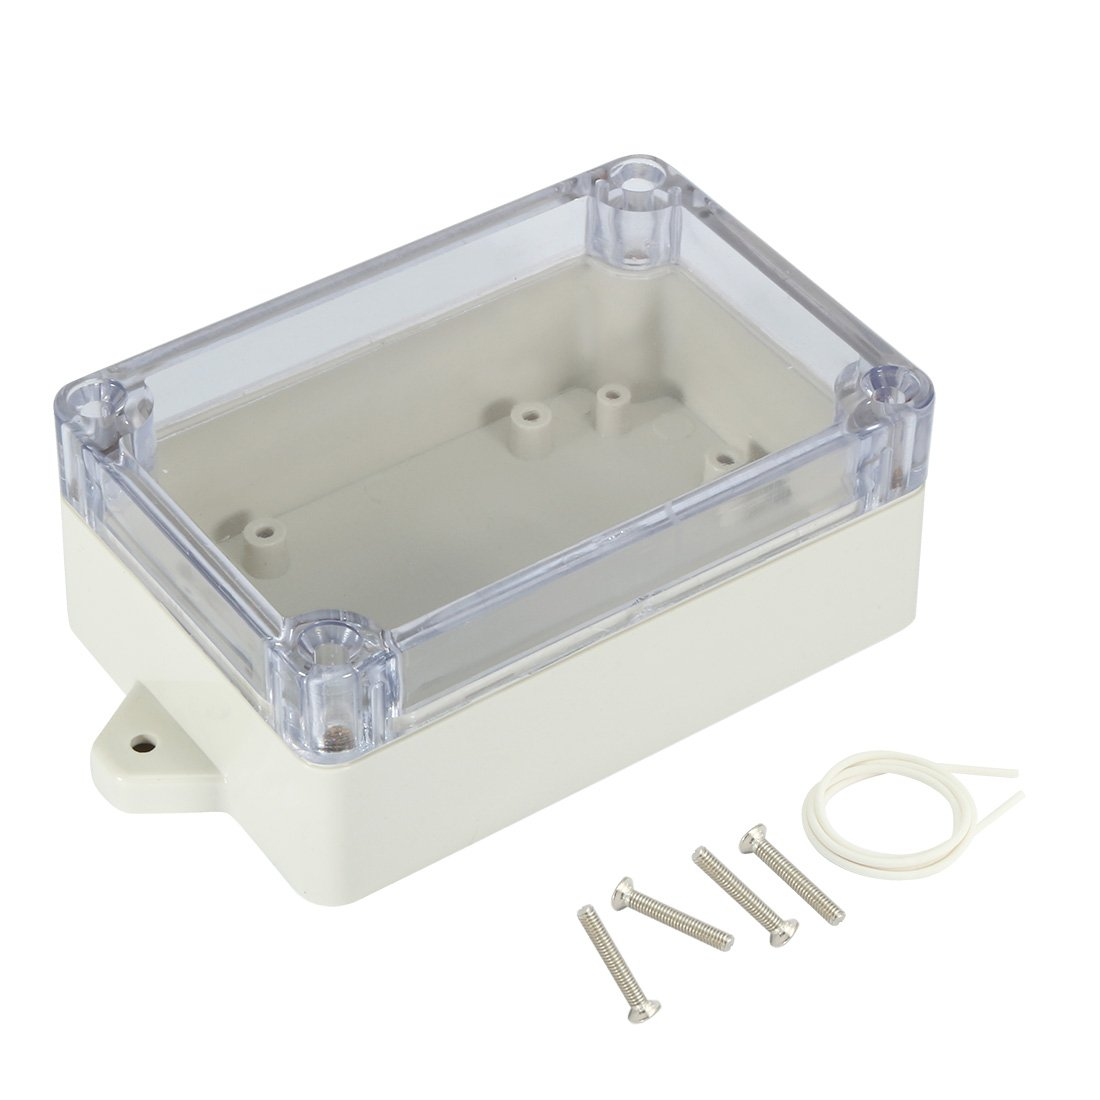 uxcell 100mmx68mmx40mm 3.9x2.7x1.6 ABS Junction Box Universal Project Enclosure w PC Transparent Cover